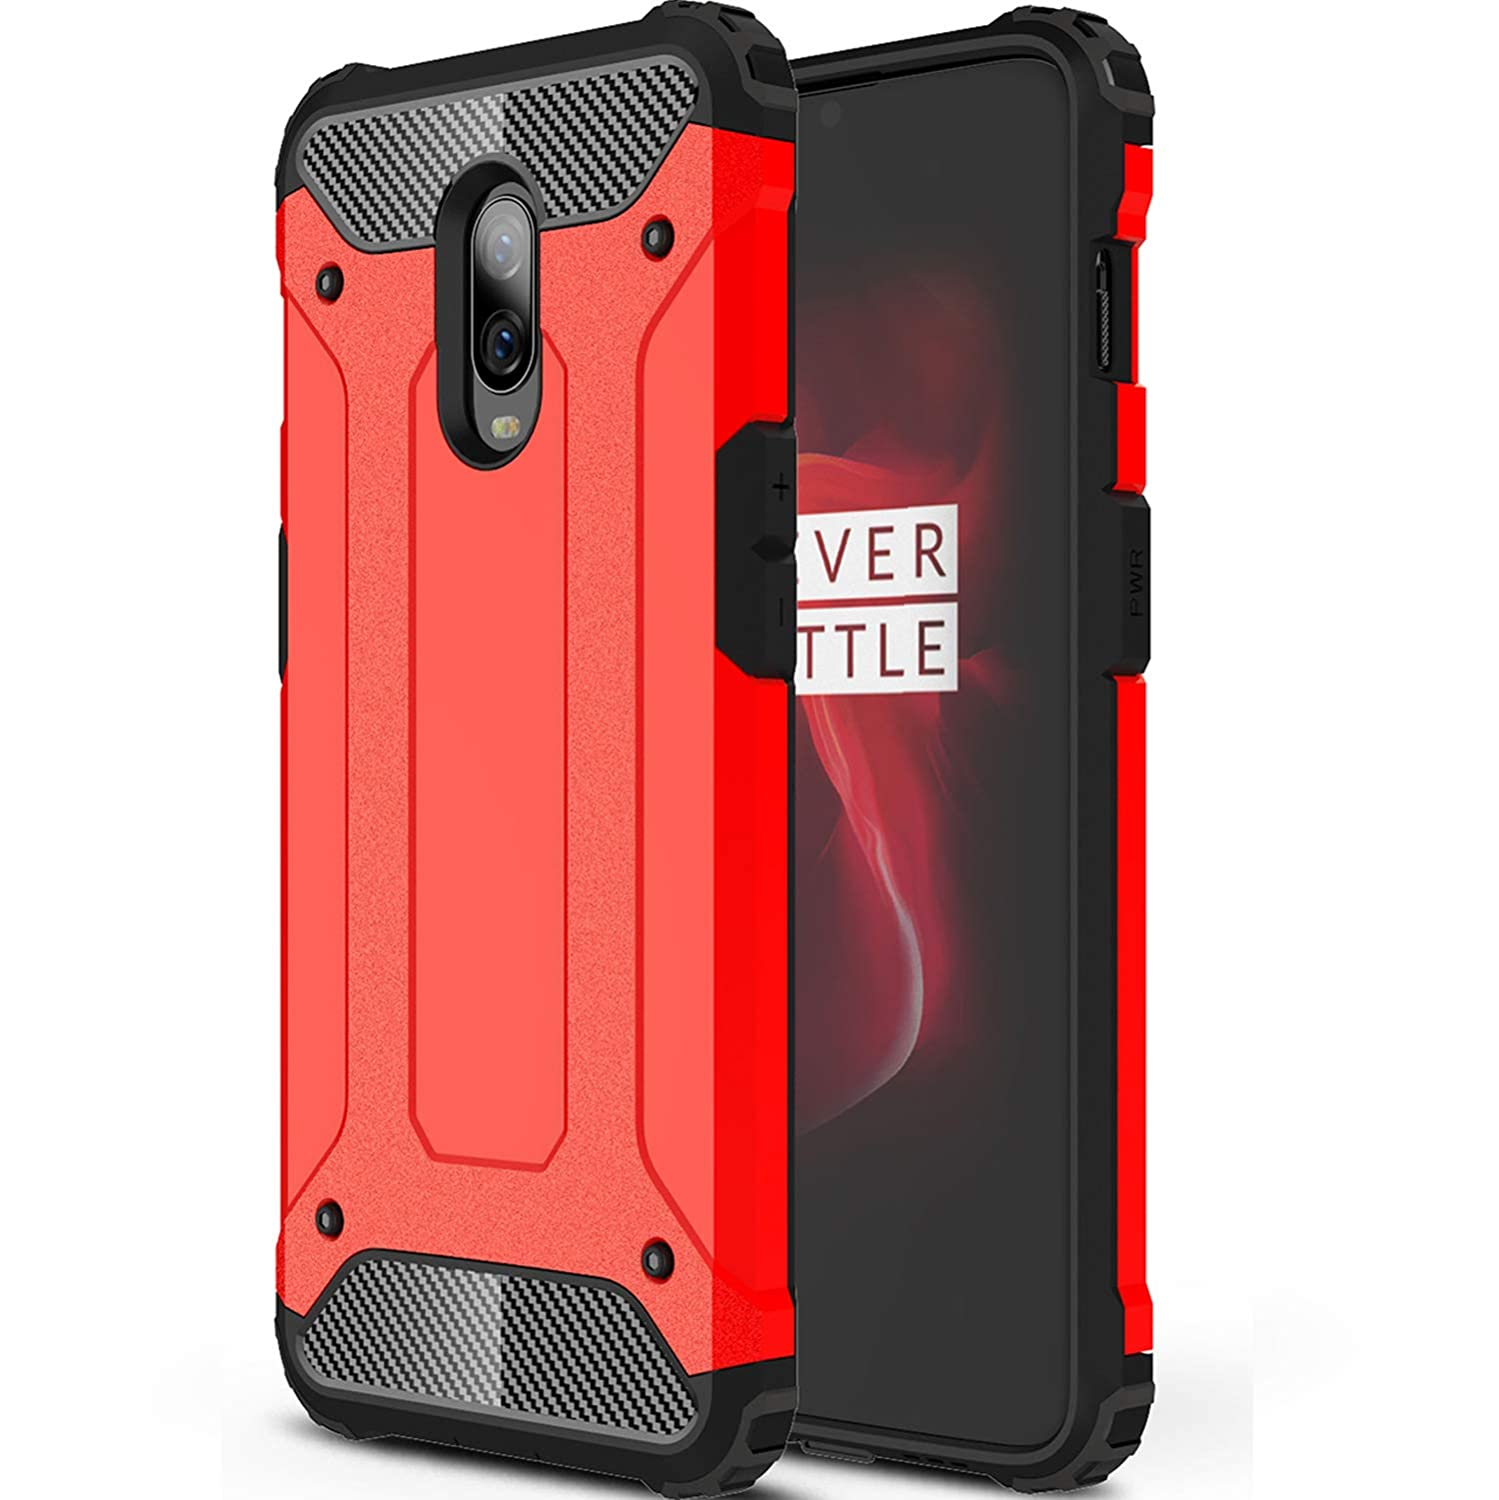 OnePlus 6T Case CJ Sunshine Dual Shockproof Hard Rugged Case for OnePlus 6T Smartphone (Red) Aidinar-001